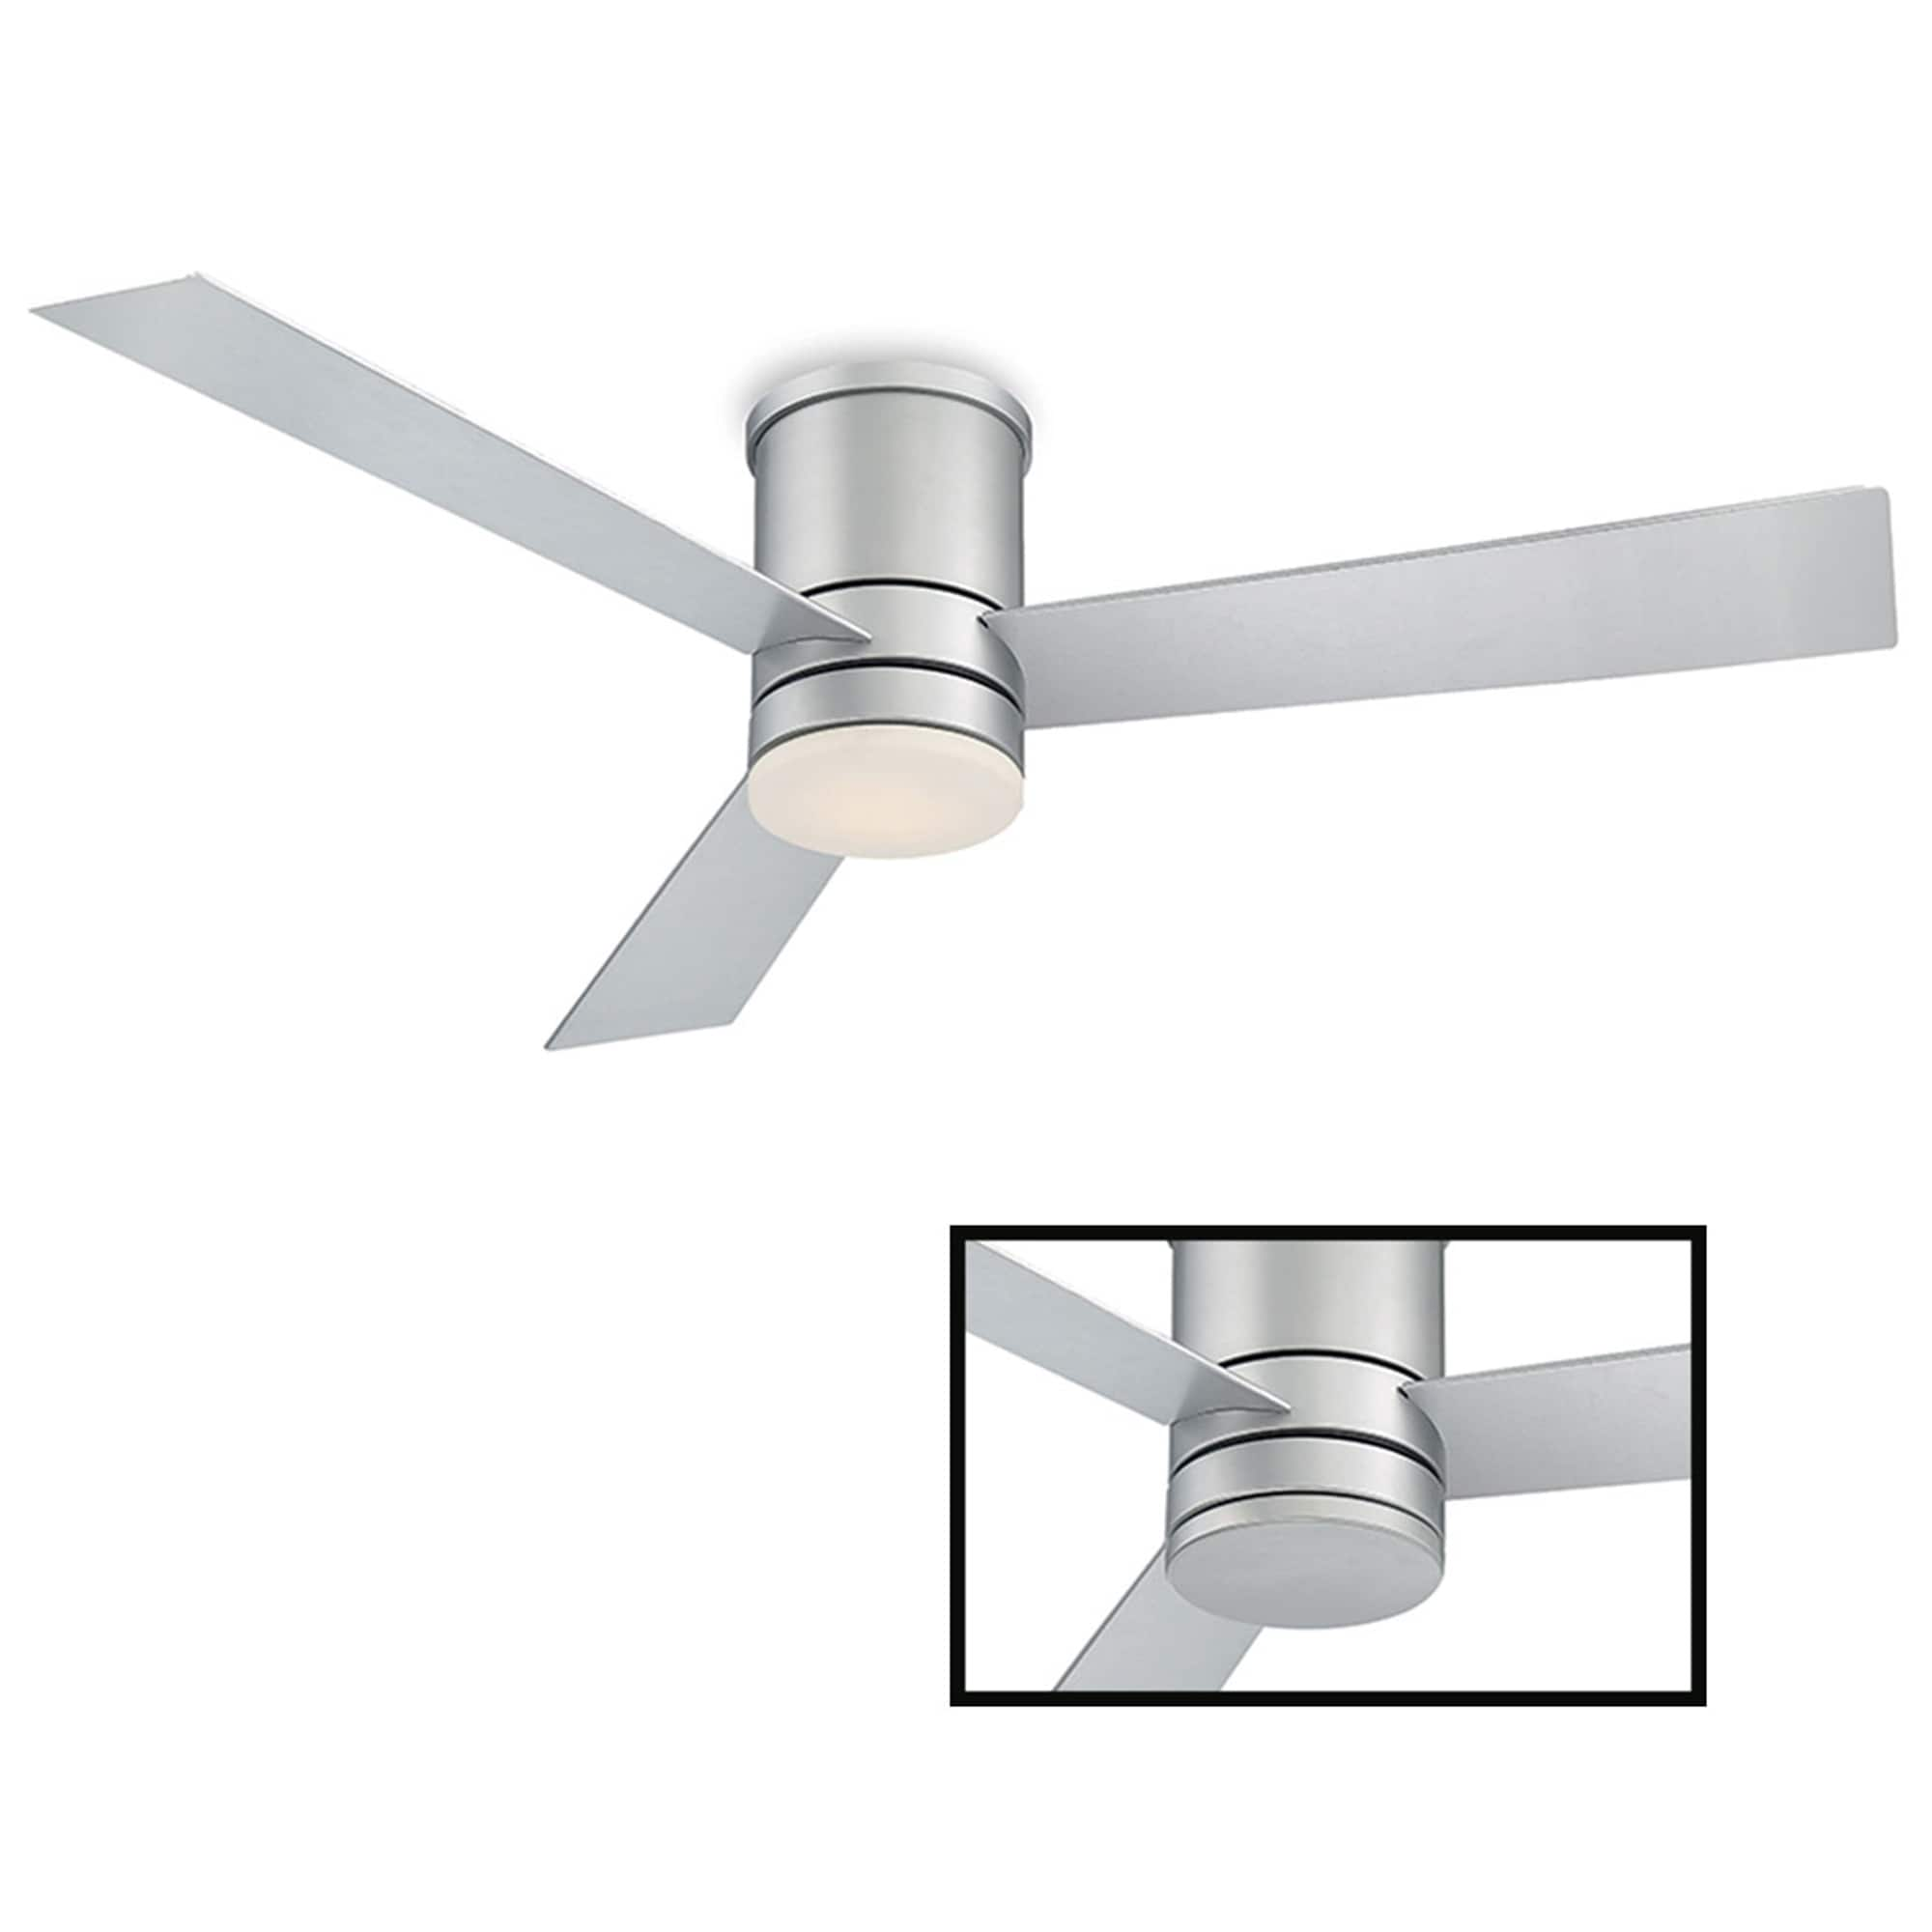 Shop For Axis 52 Inch Three Speed Indoor Outdoor Smart Flush Mount Ceiling Fan With Six Speed Dc Motor And Led Light Get Free Delivery On Everything At Overstock Your Online Ceiling Fans Accessories Store Get 5 In Rewards With Club O